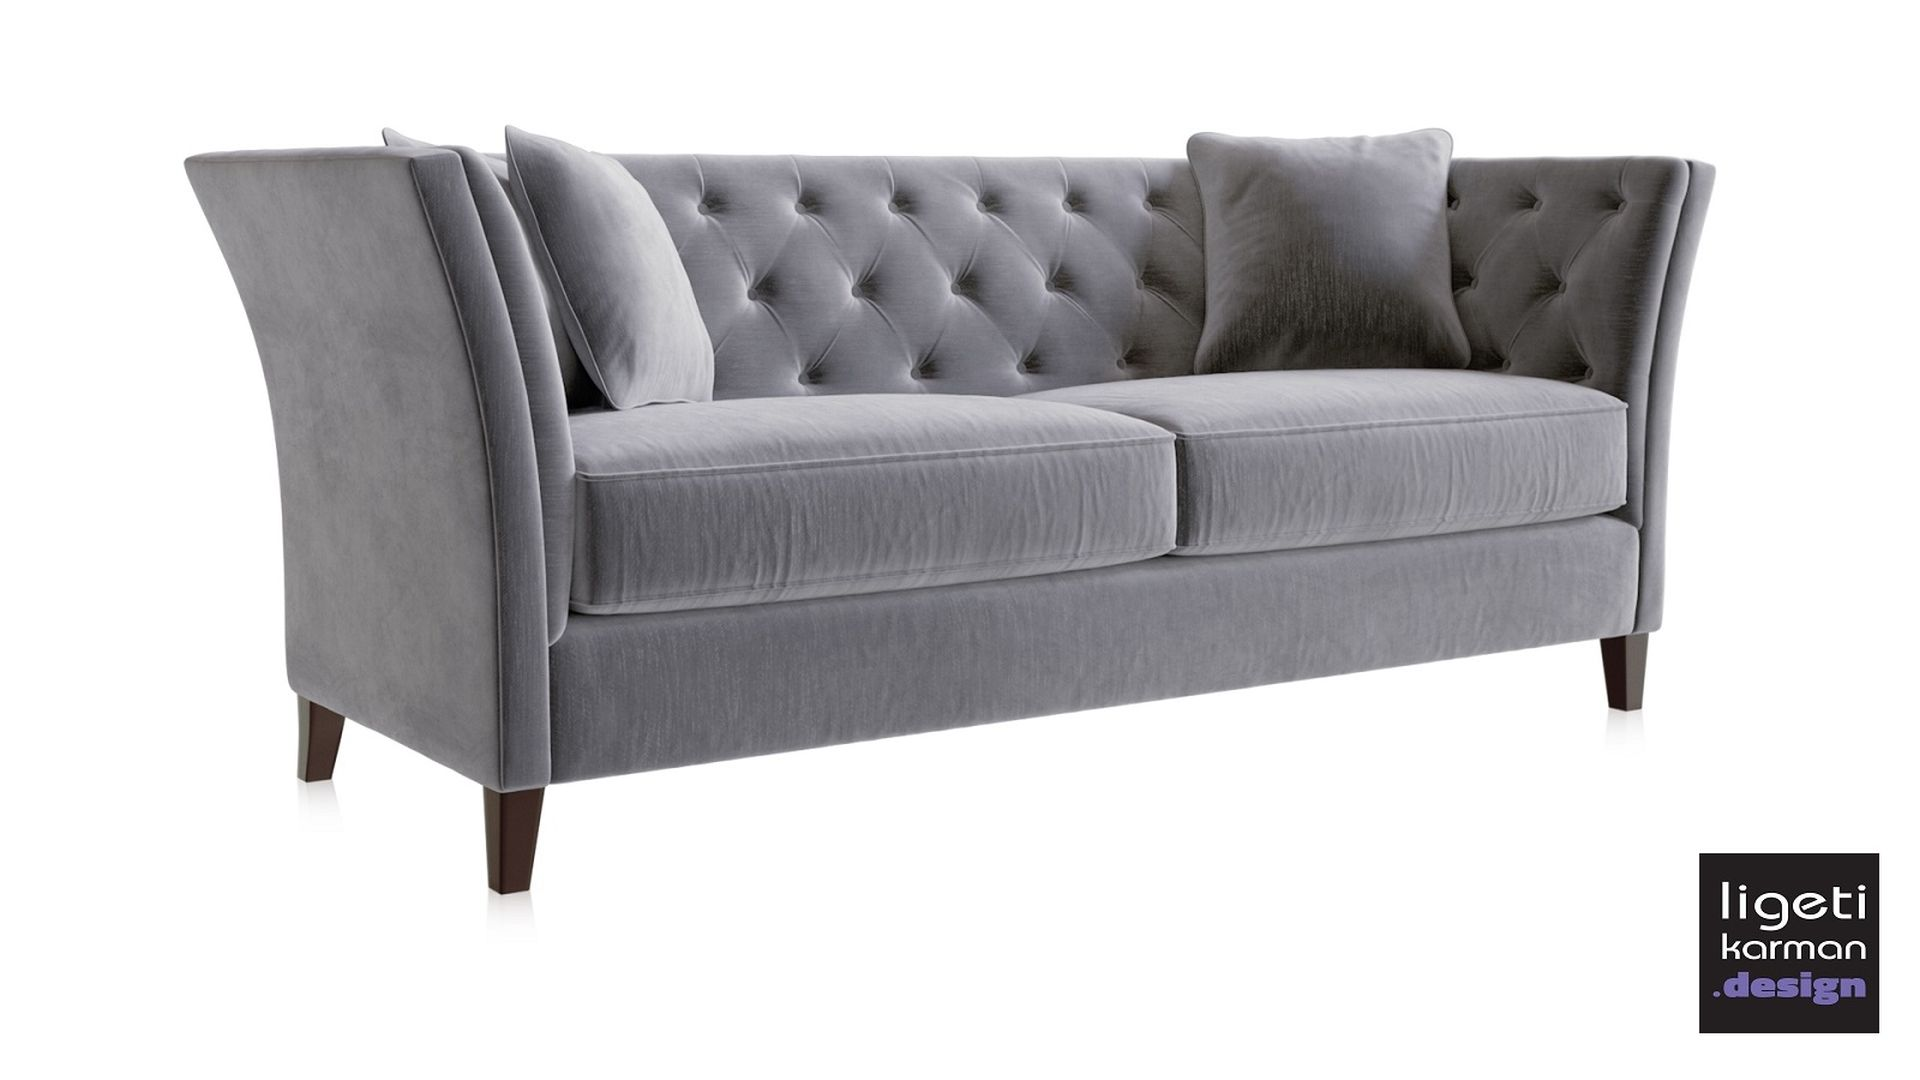 miotto_Amiato sofa grey t miotto design furniture